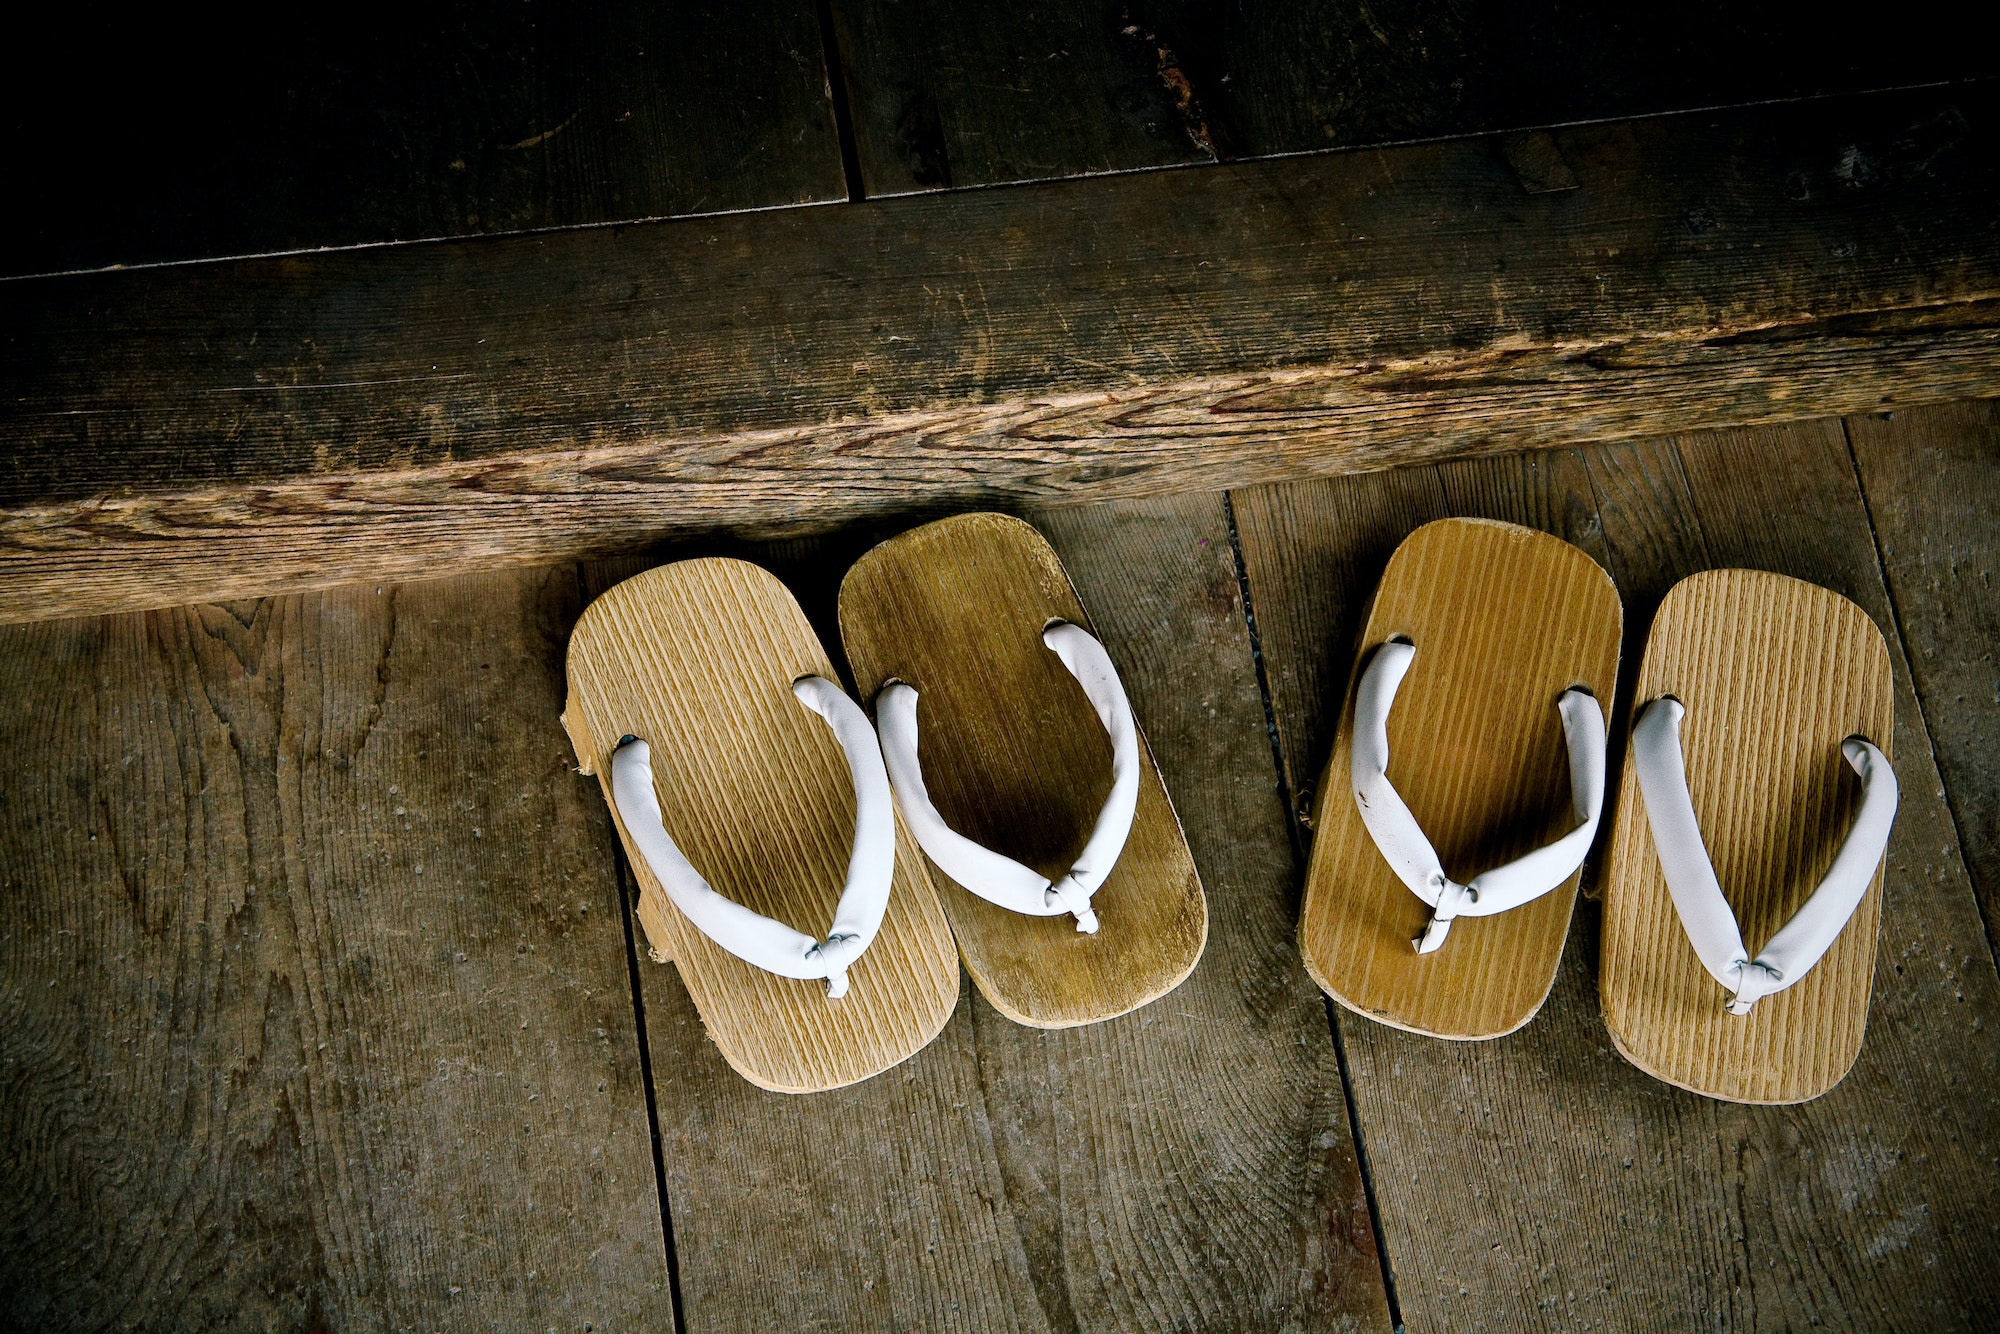 Geta (traditional Japanese sandals)